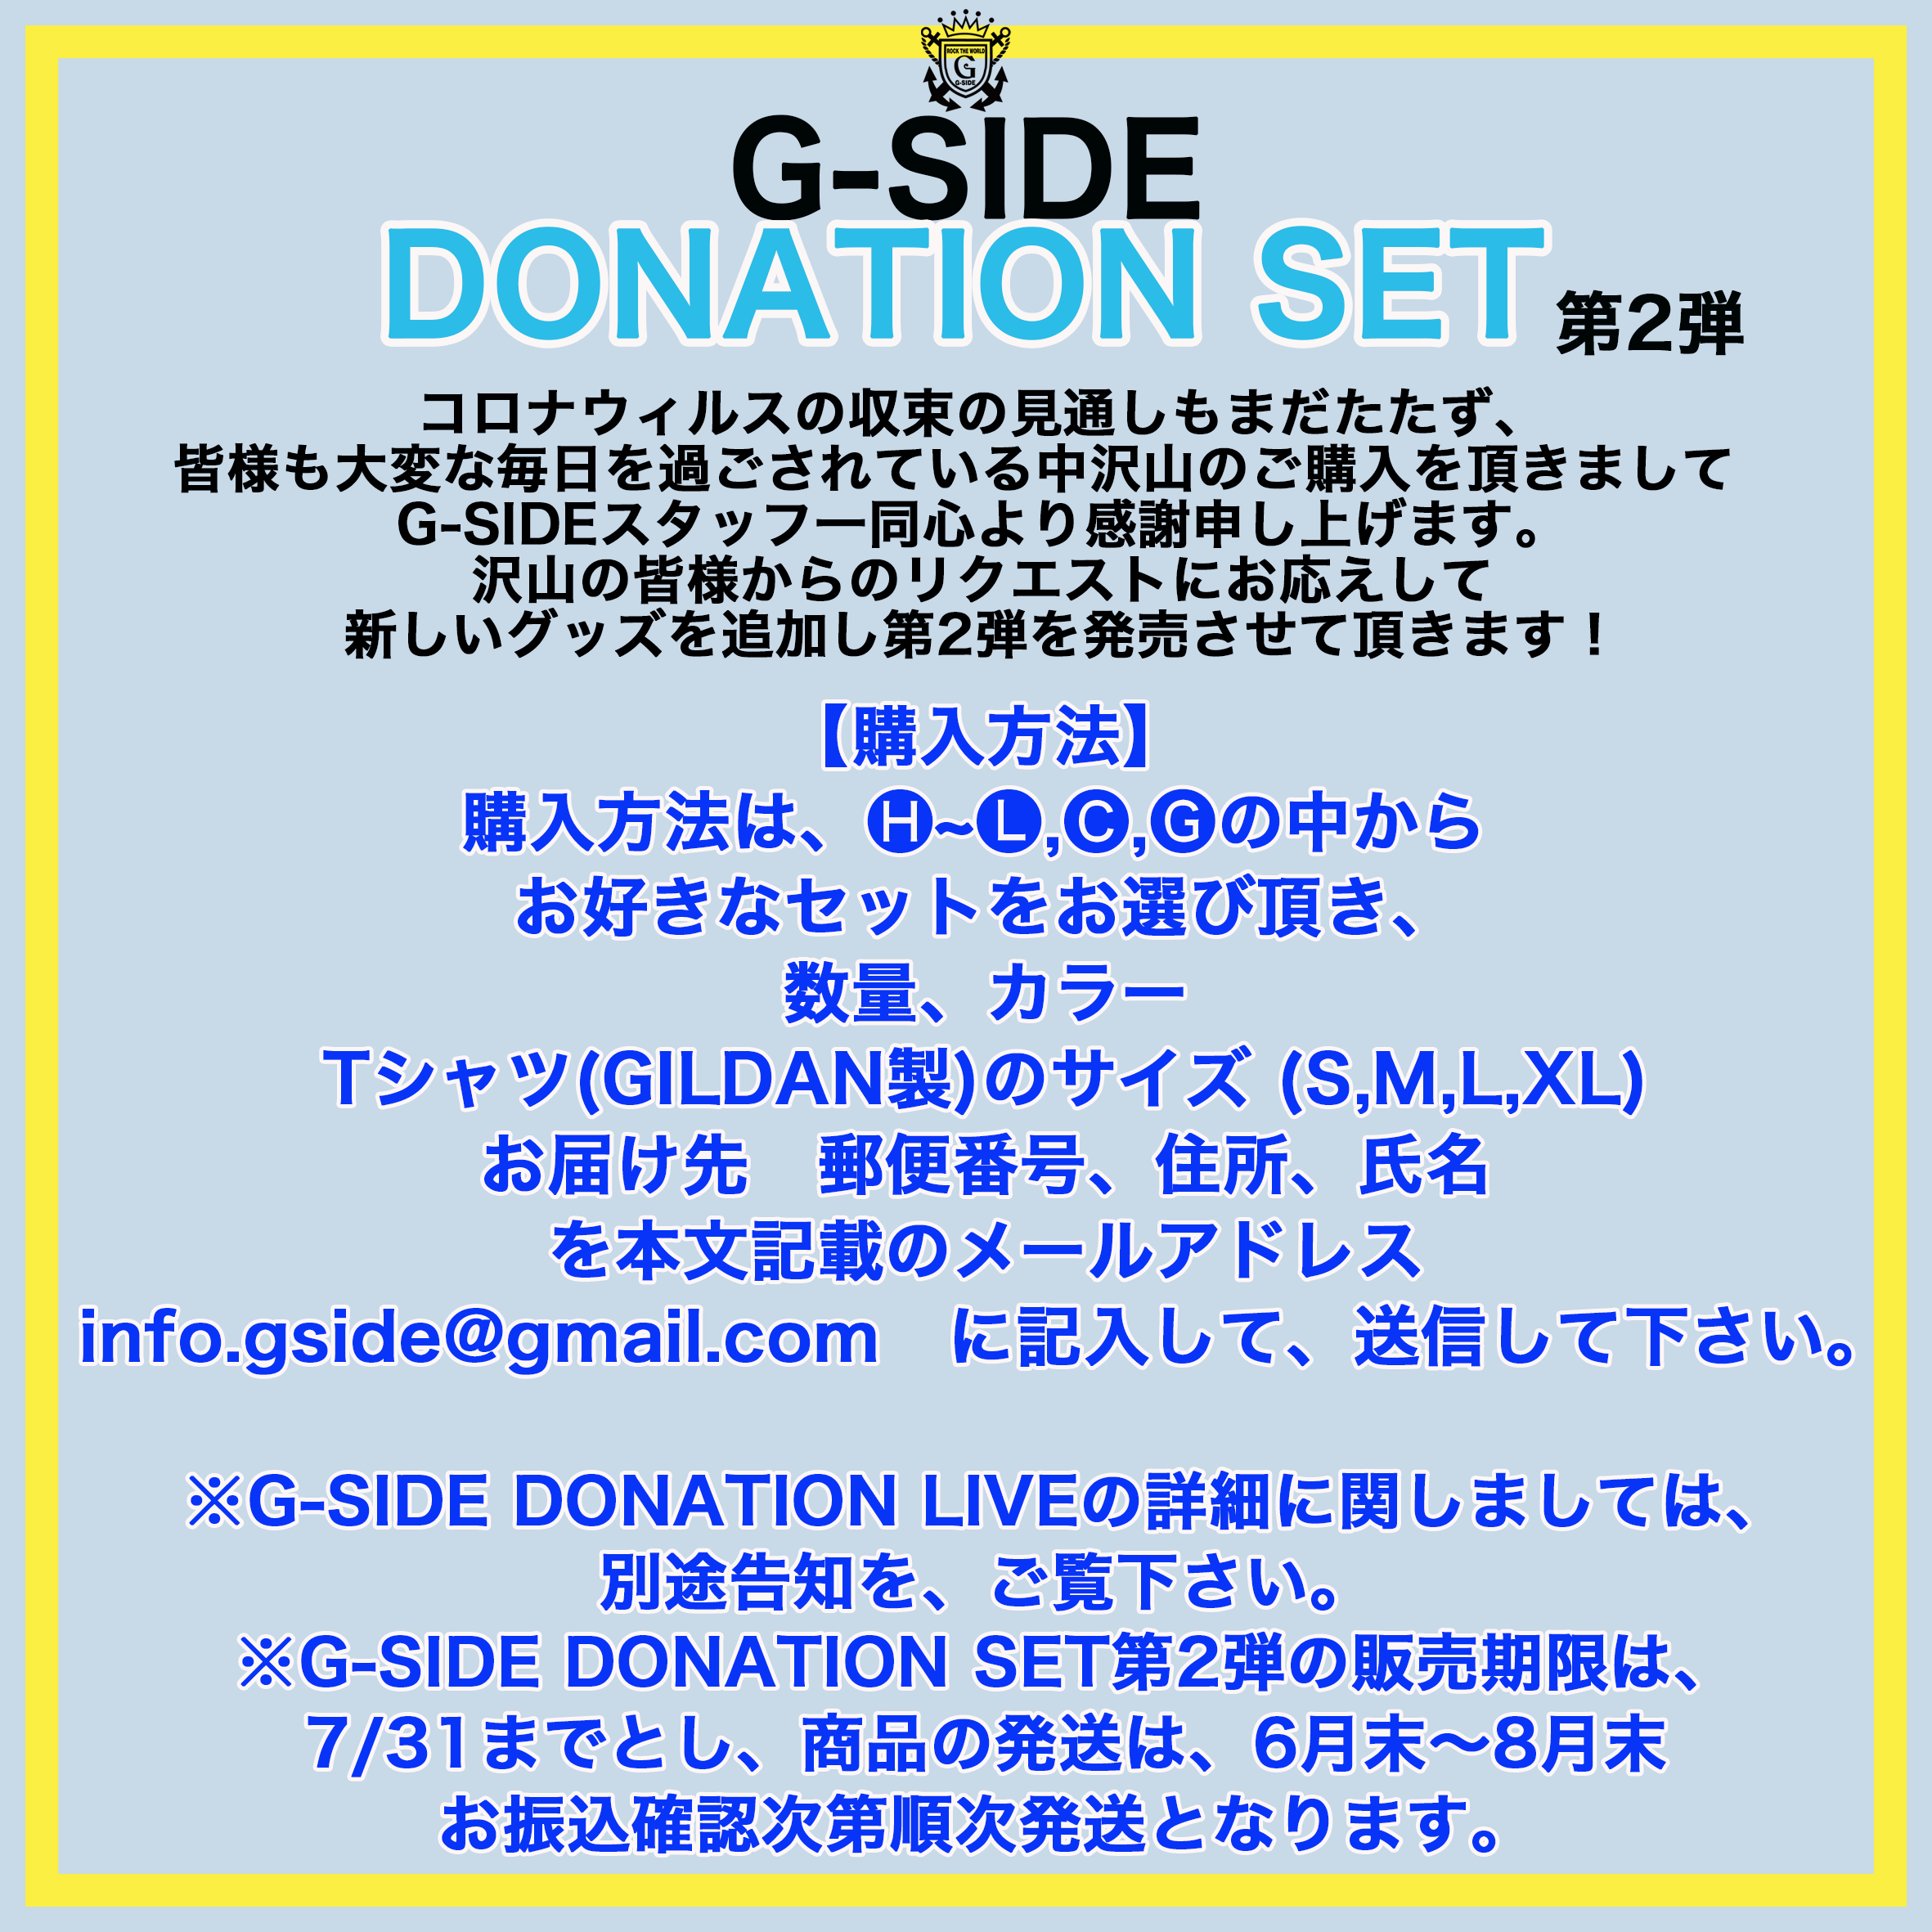 G-SIDE DONATION SET 第2弾